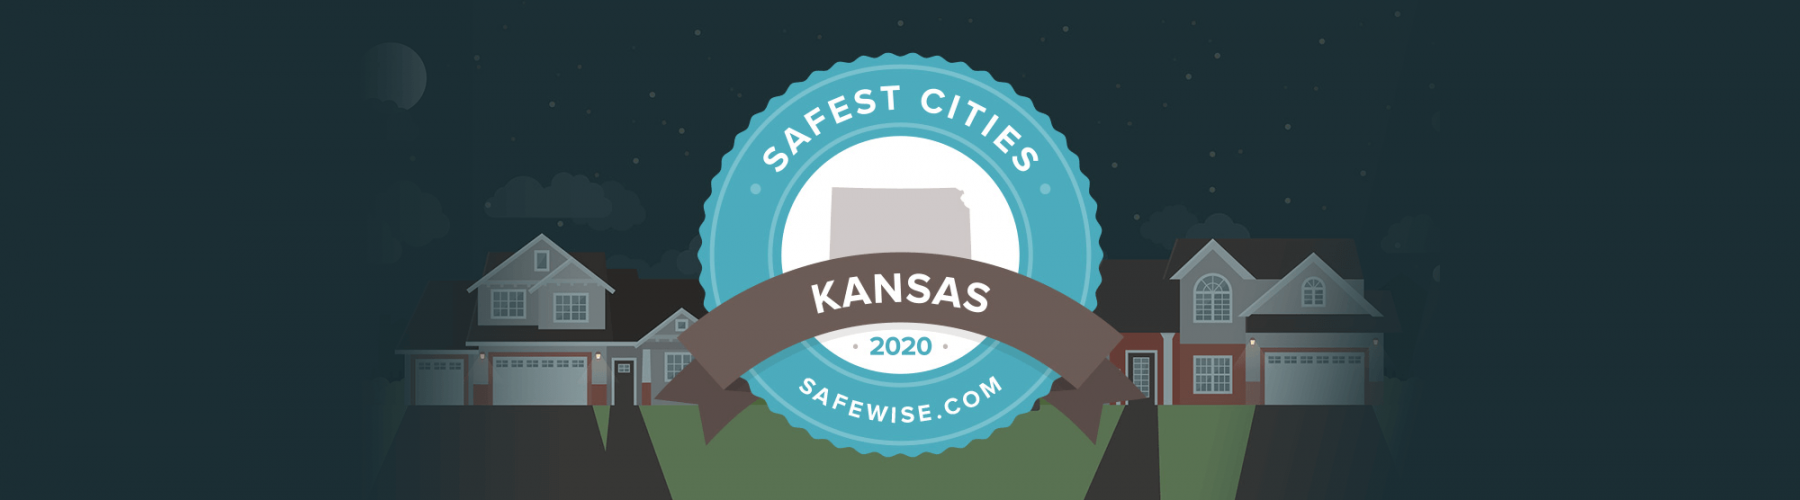 Safest Cities in Kansas 2020